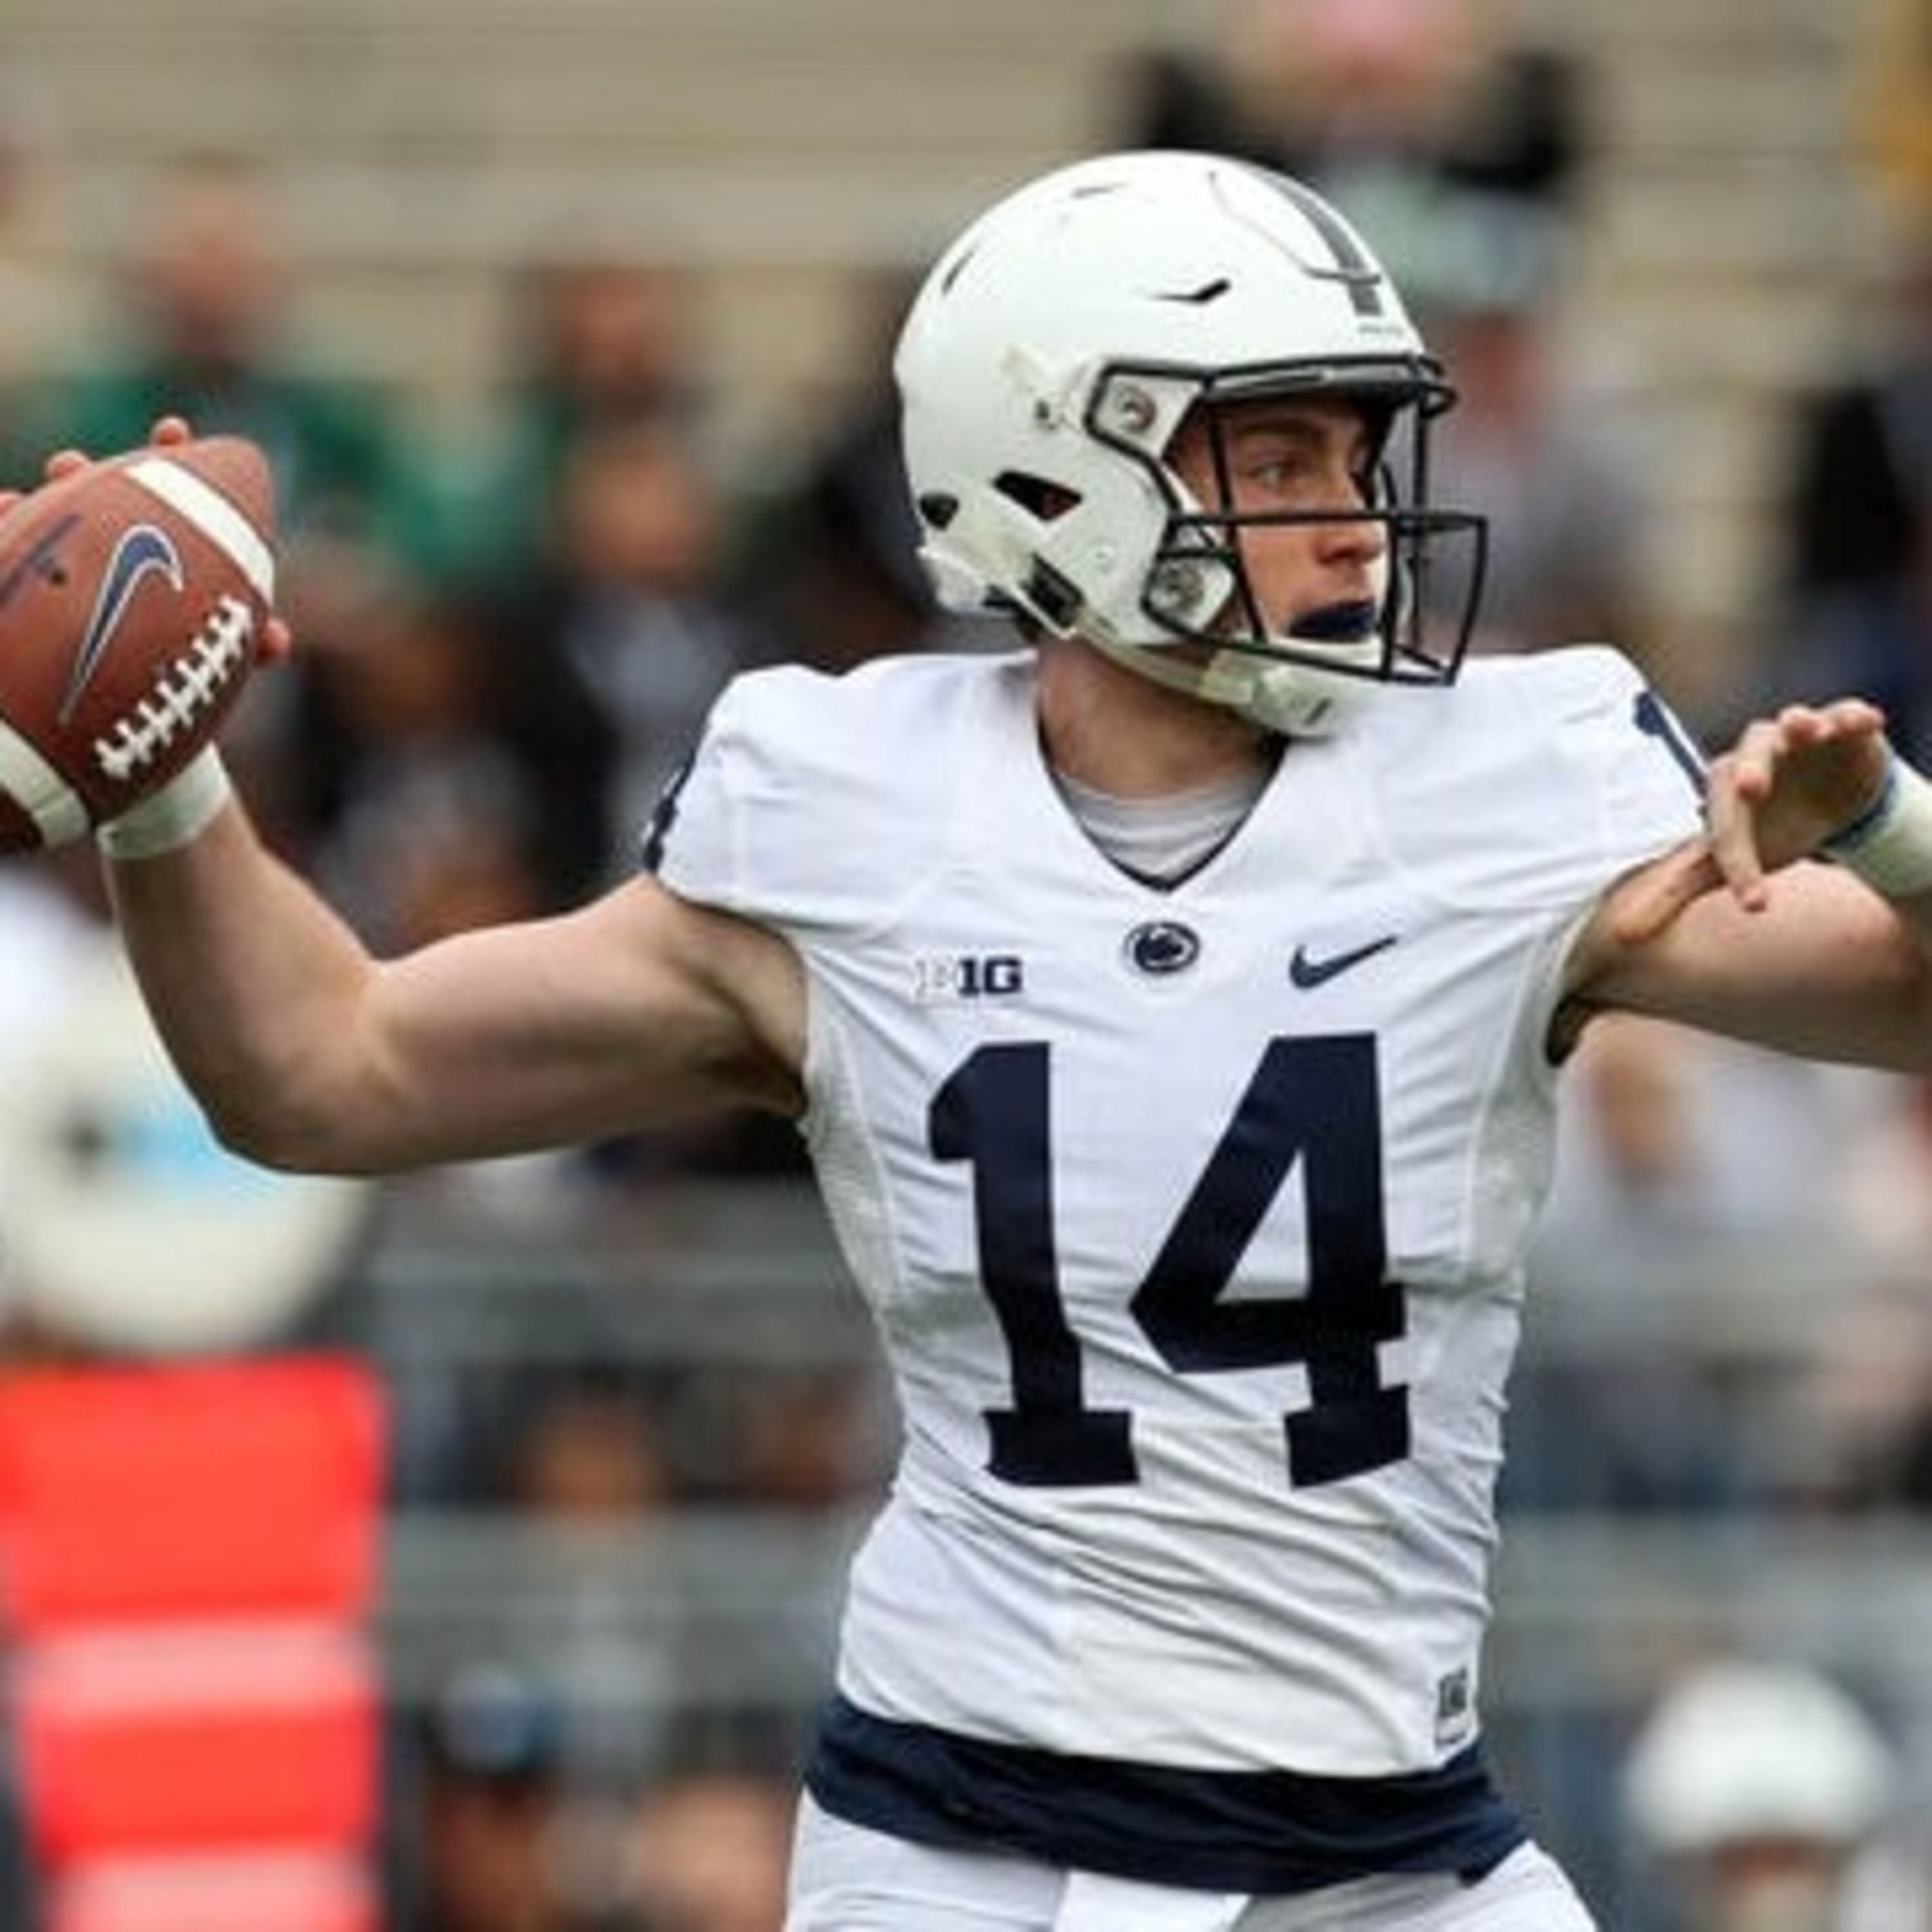 Penn State Radio: Sean Clifford captains the new Era in Penn State football. New 2020 commit.